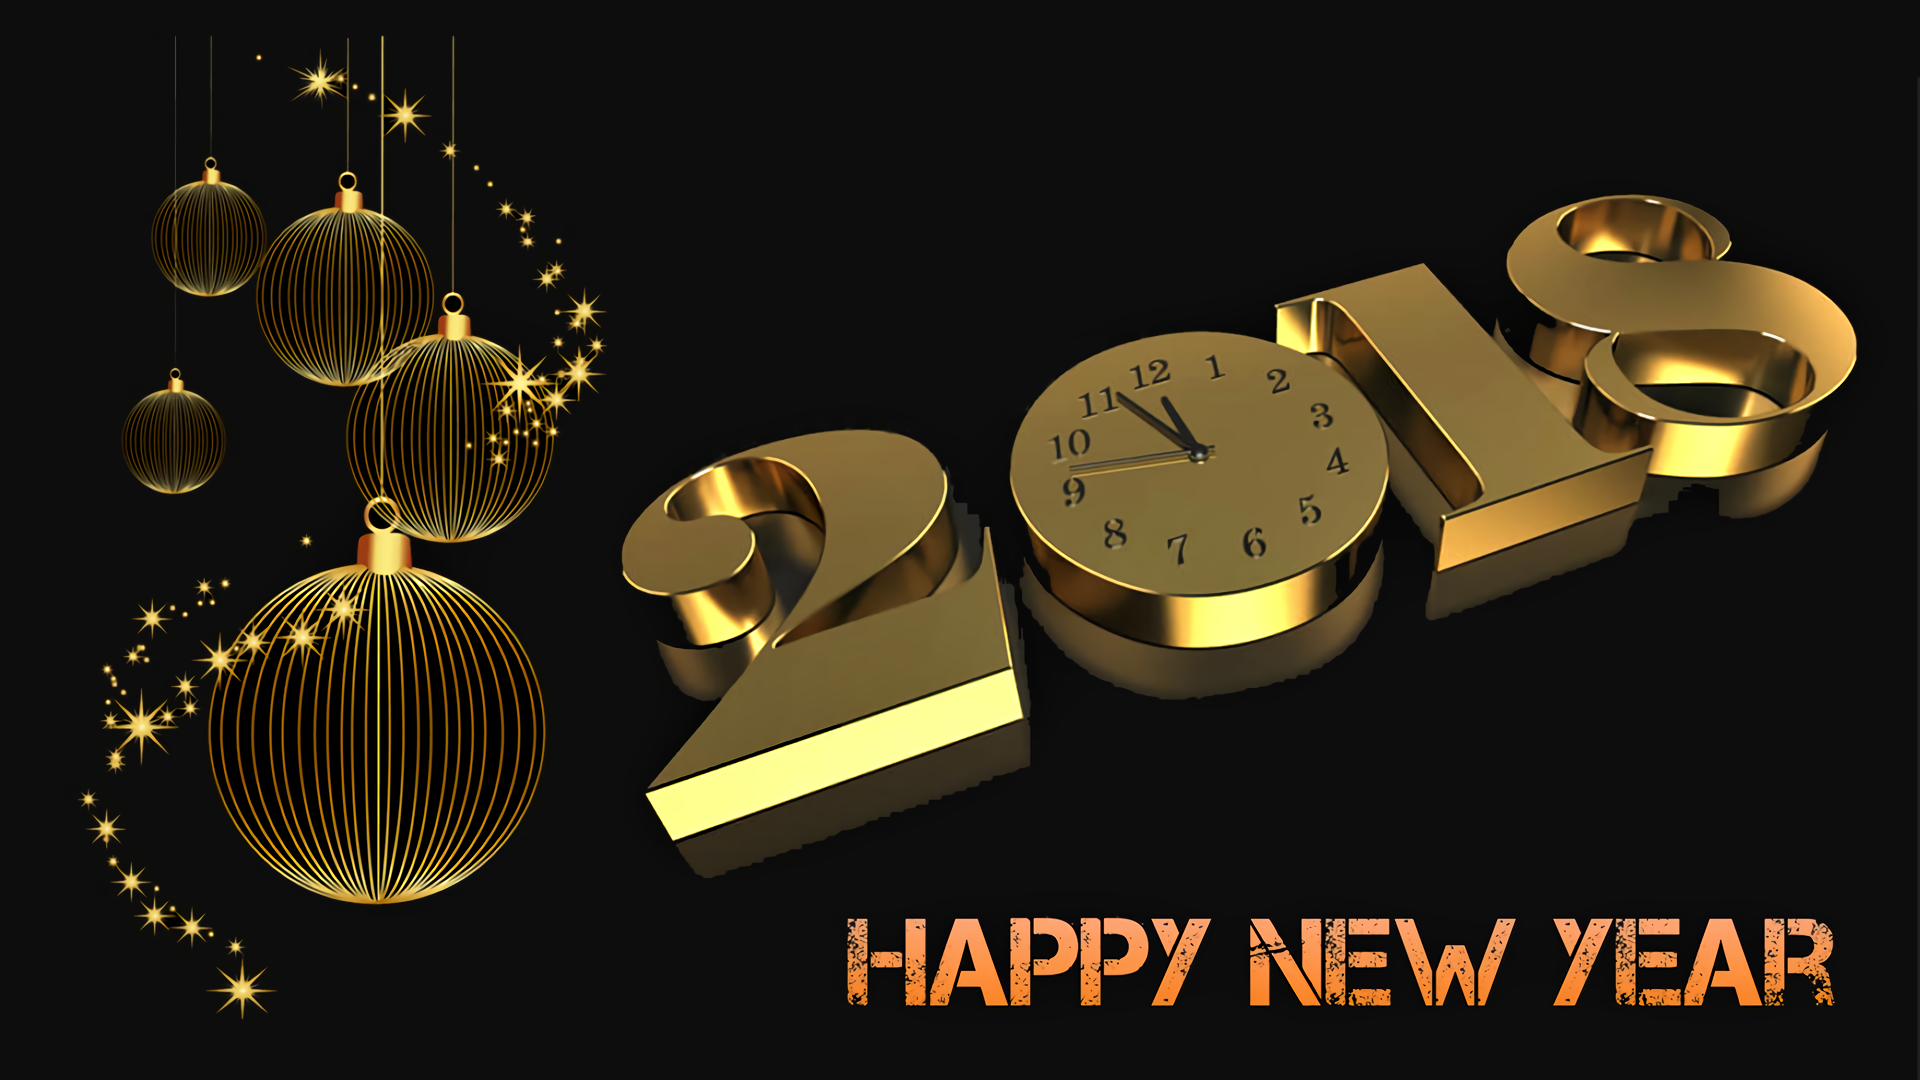 198 Happy New Year Hd Wallpapers Background Images Wallpaper Abyss